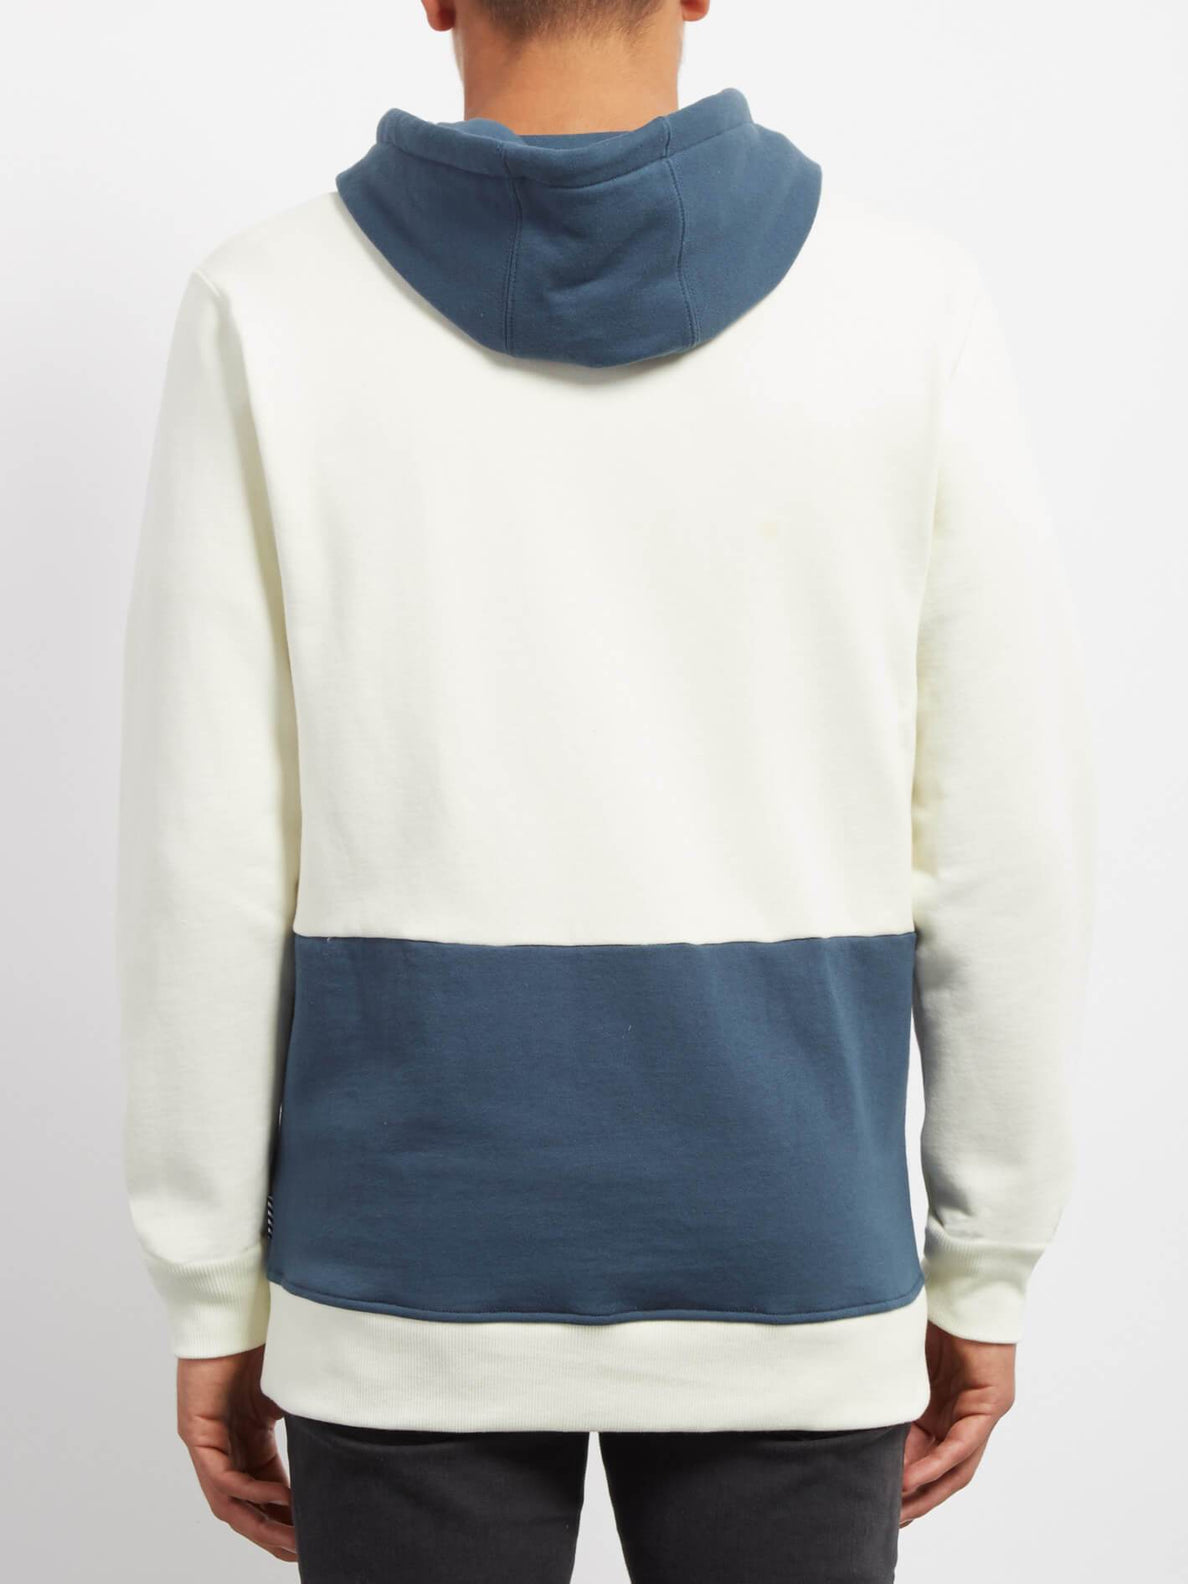 Backronym Zip Sweaters - Dirty White